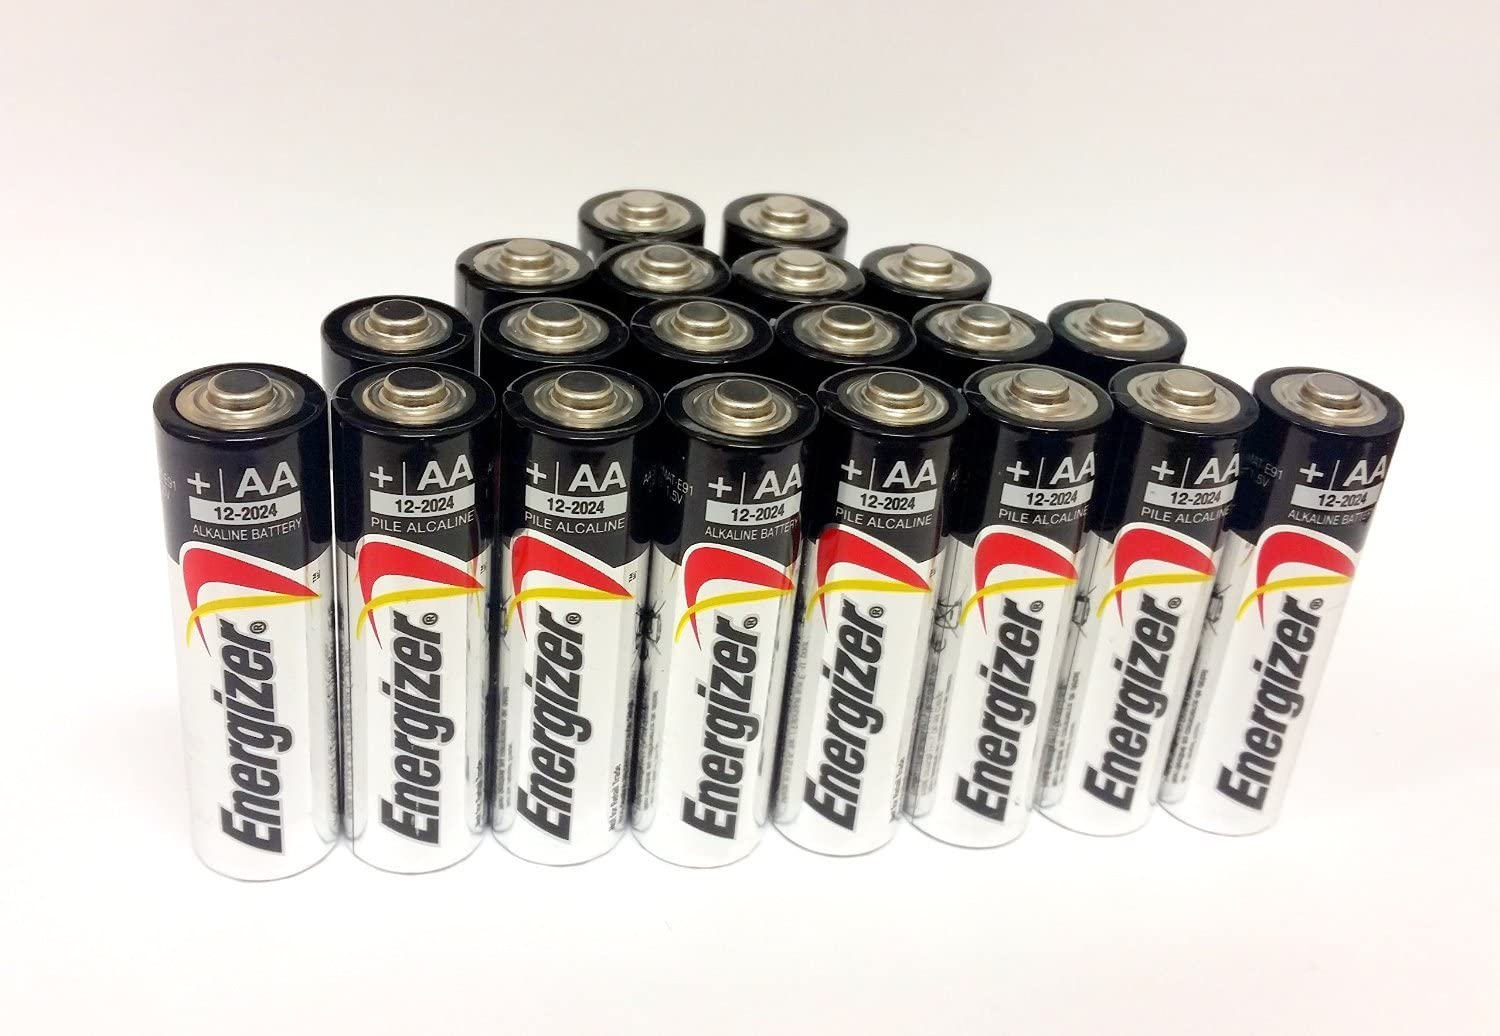 Energizer AA Max Price reduction Alkaline E91 Batteries in Expiration USA Made - 2021 model